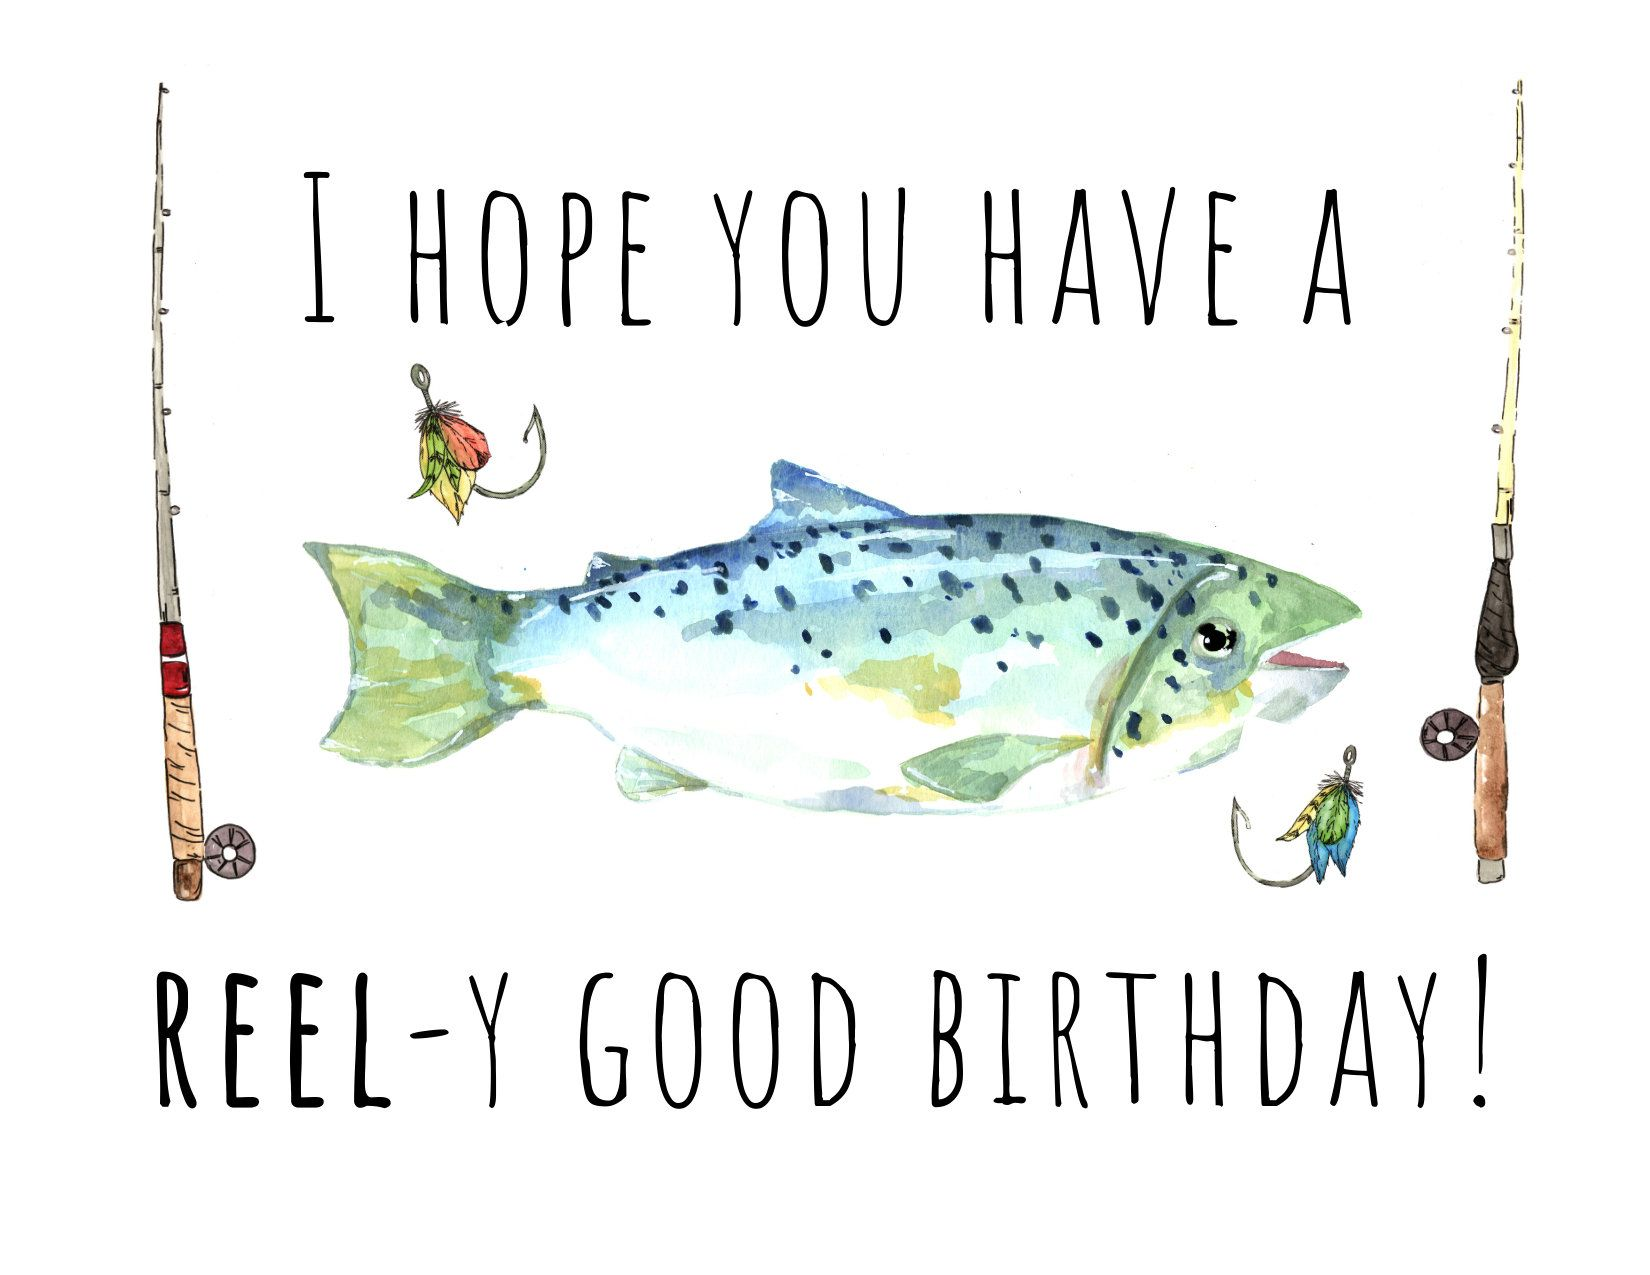 Watercolor Painted Fishing Birthday Card Hope You Have A Reel Y Good Birthday Card For Dad Gra Dad Birthday Card Fishing Birthday Cards Cool Birthday Cards